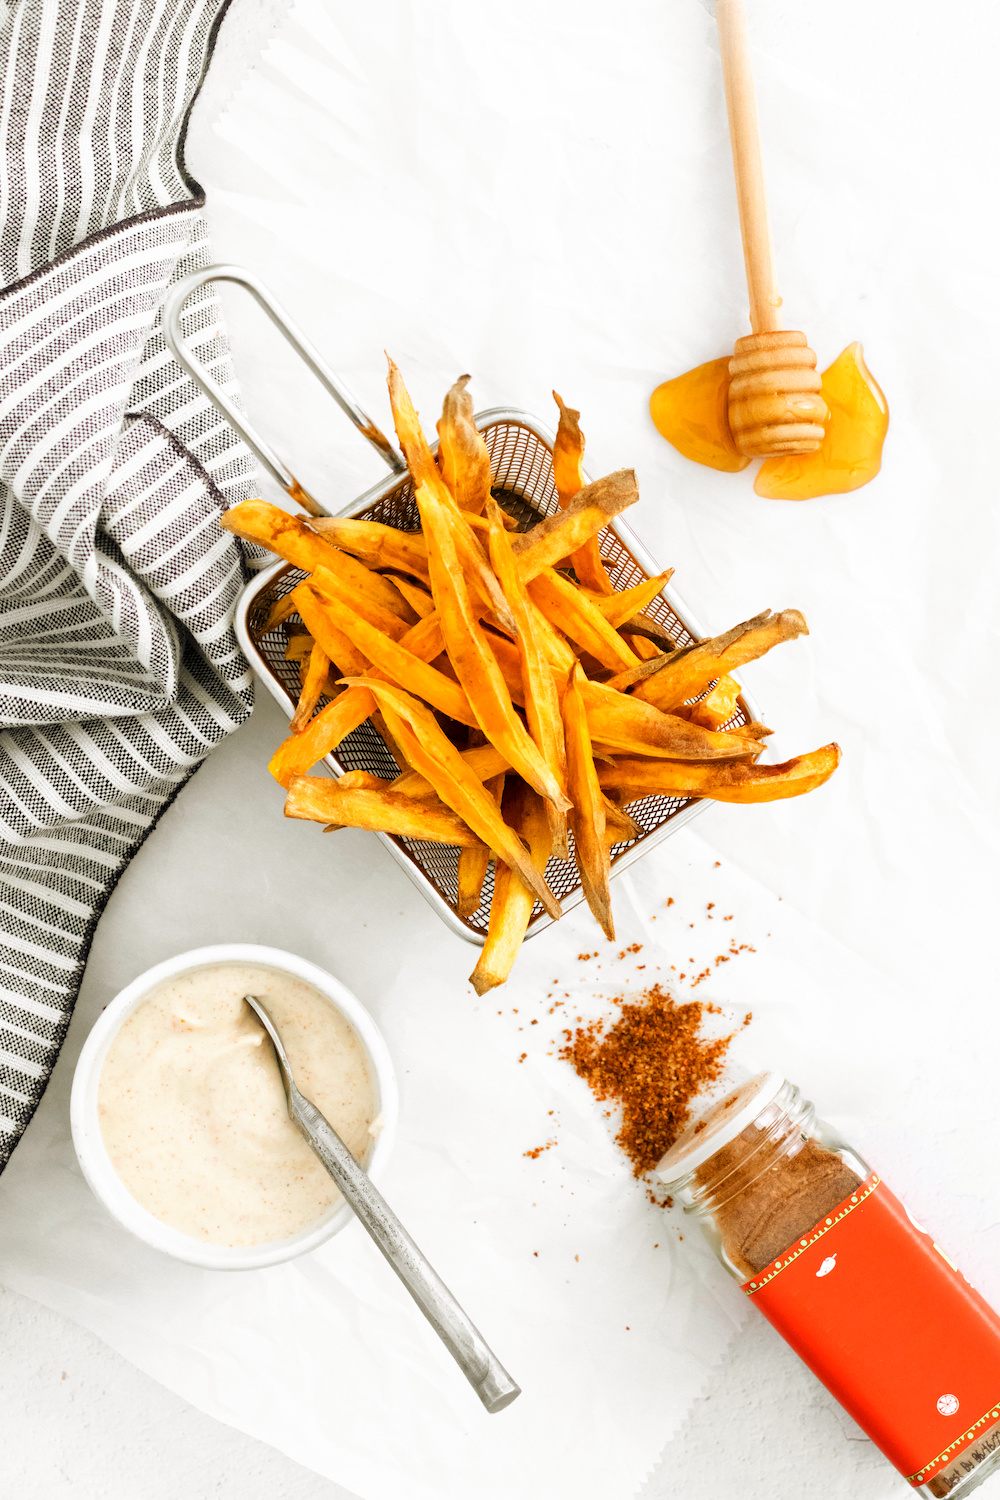 Sweet potato french fries cooked in the air fryer